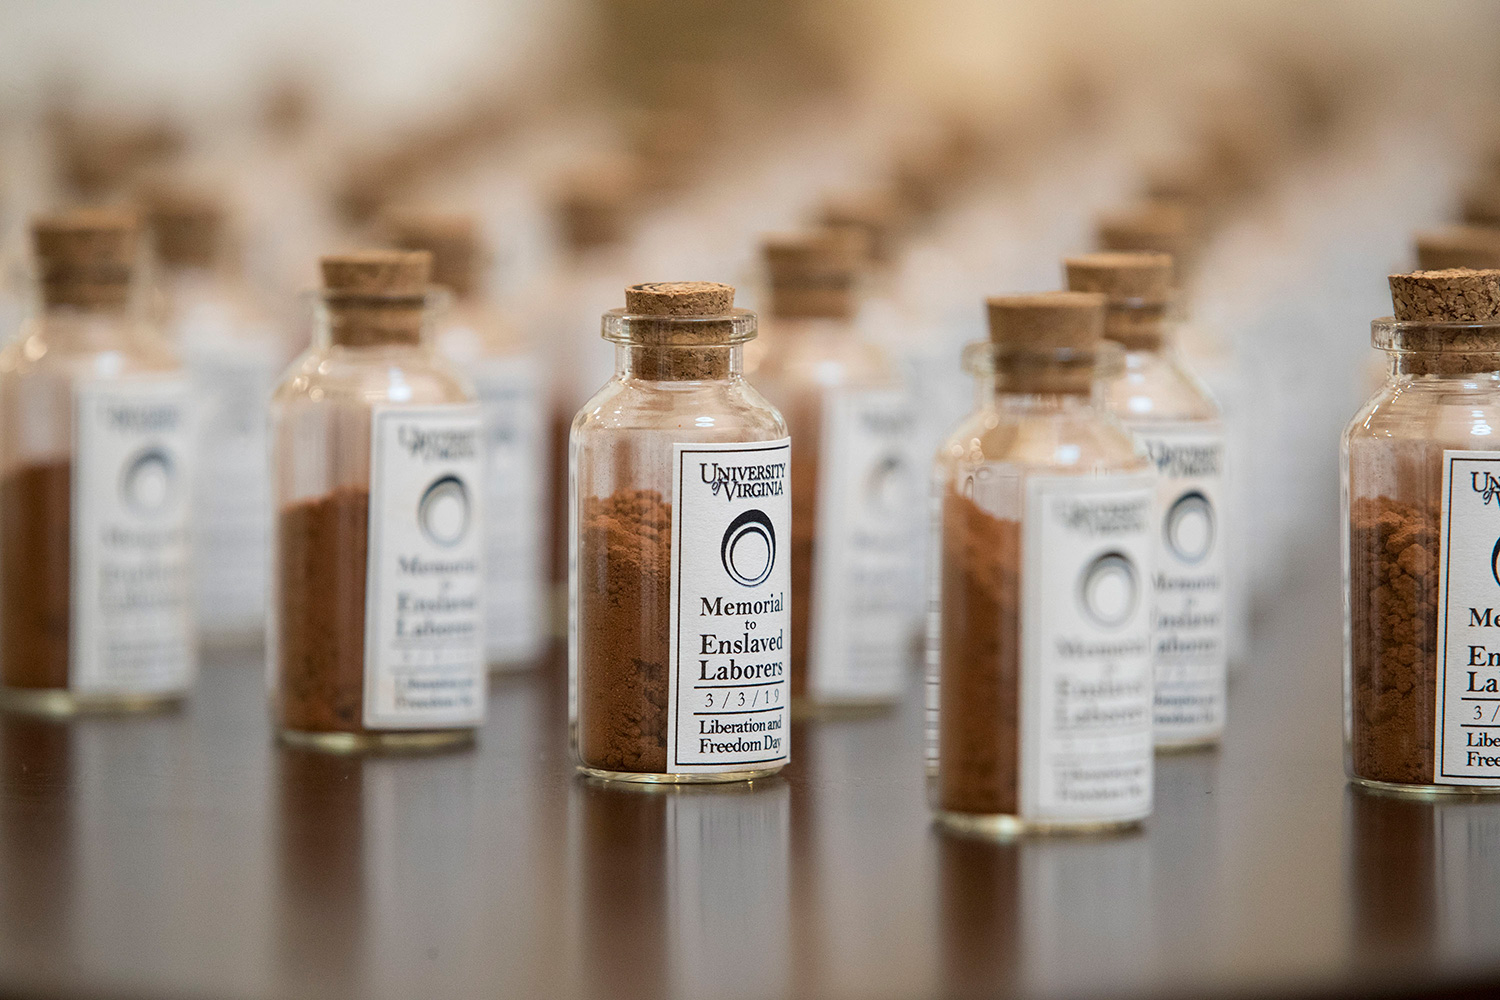 Commemorative vials of soil from the memorial construction site were given away, the same kind of soil enslaved laborers might've used to make the bricks seen in the Academical Village.